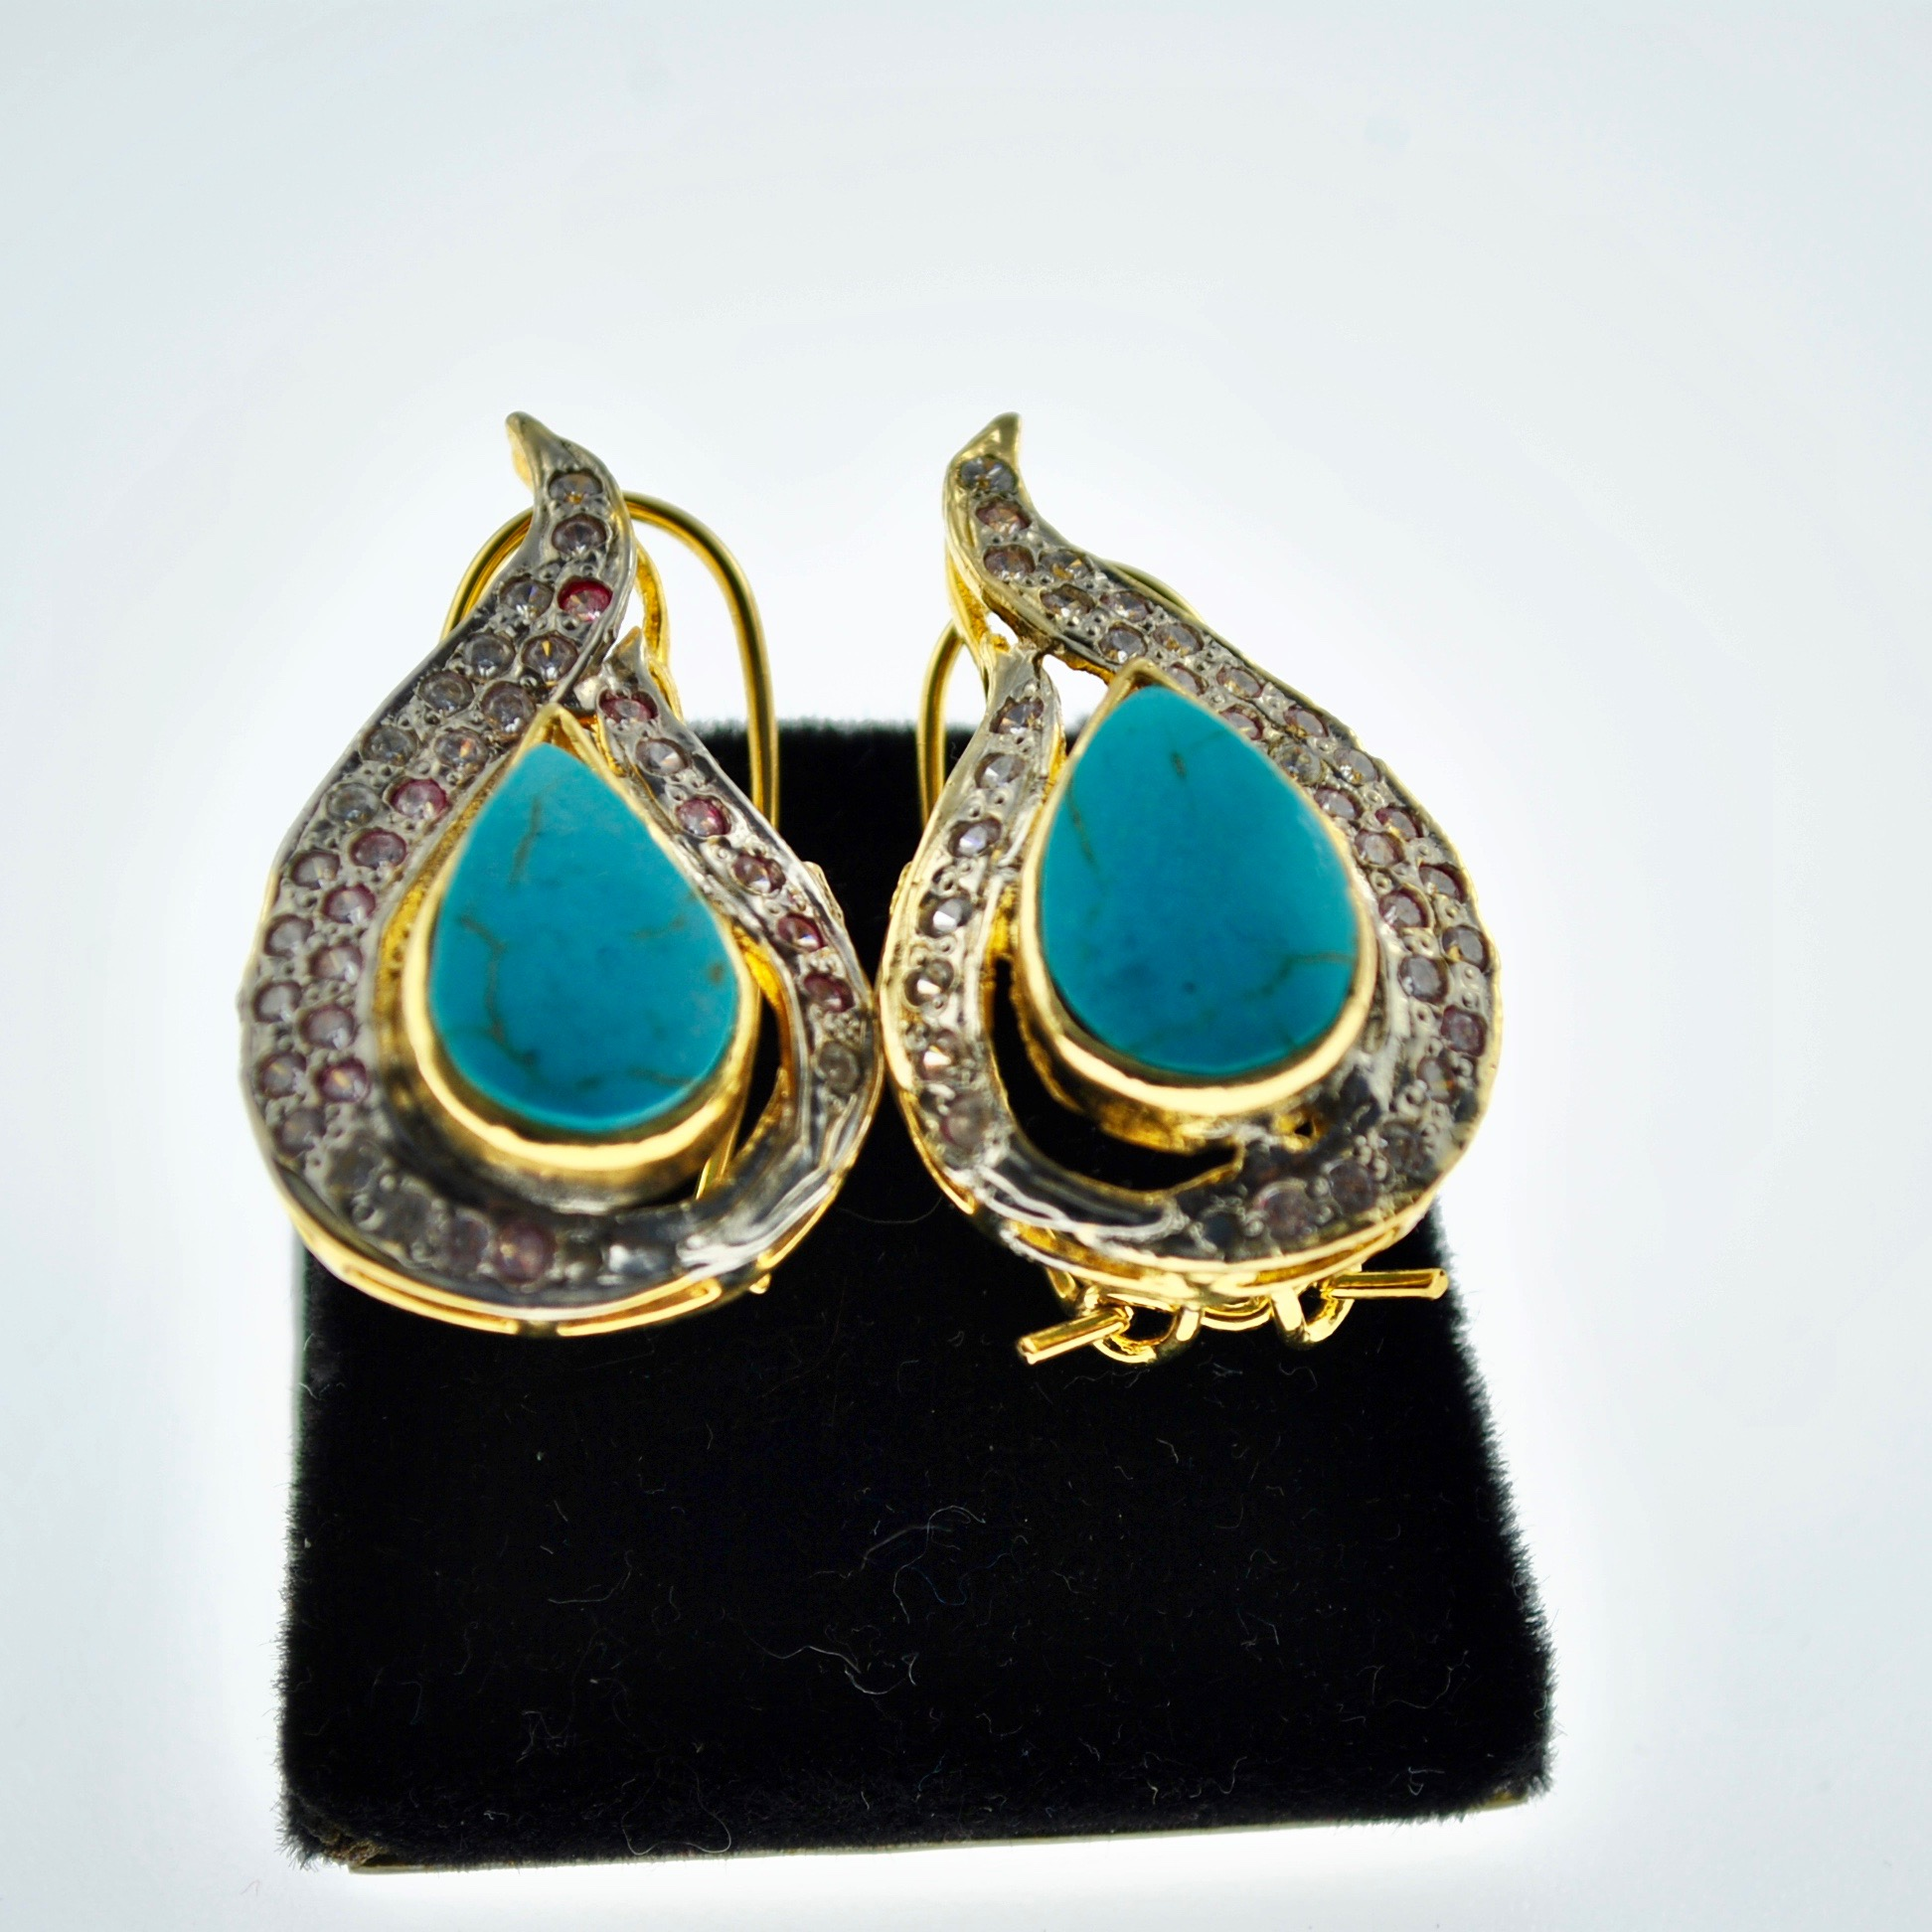 Feroza Paisley Earrings